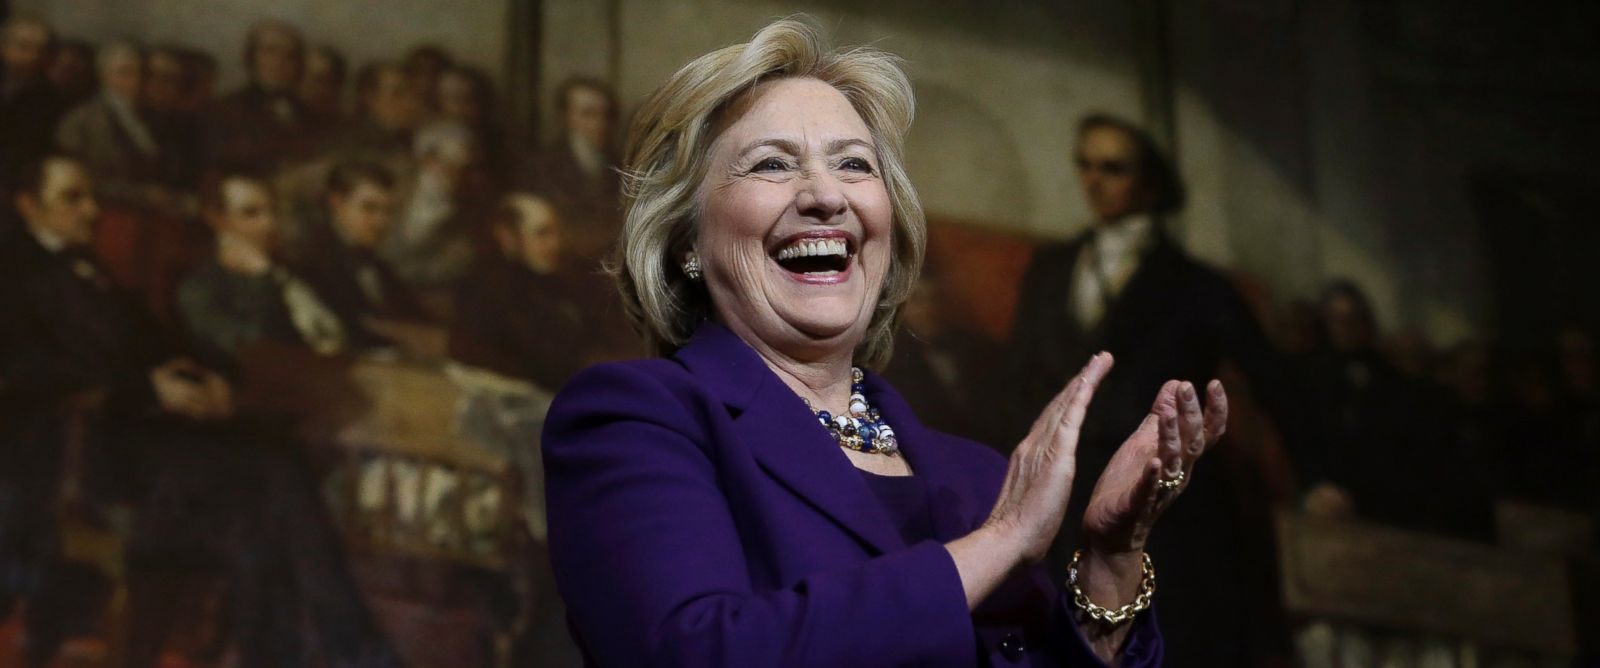 PHOTO: Democratic presidential candidate Hillary Clinton smiles on stage at the start of a rally, Nov. 29, 2015, in Boston.